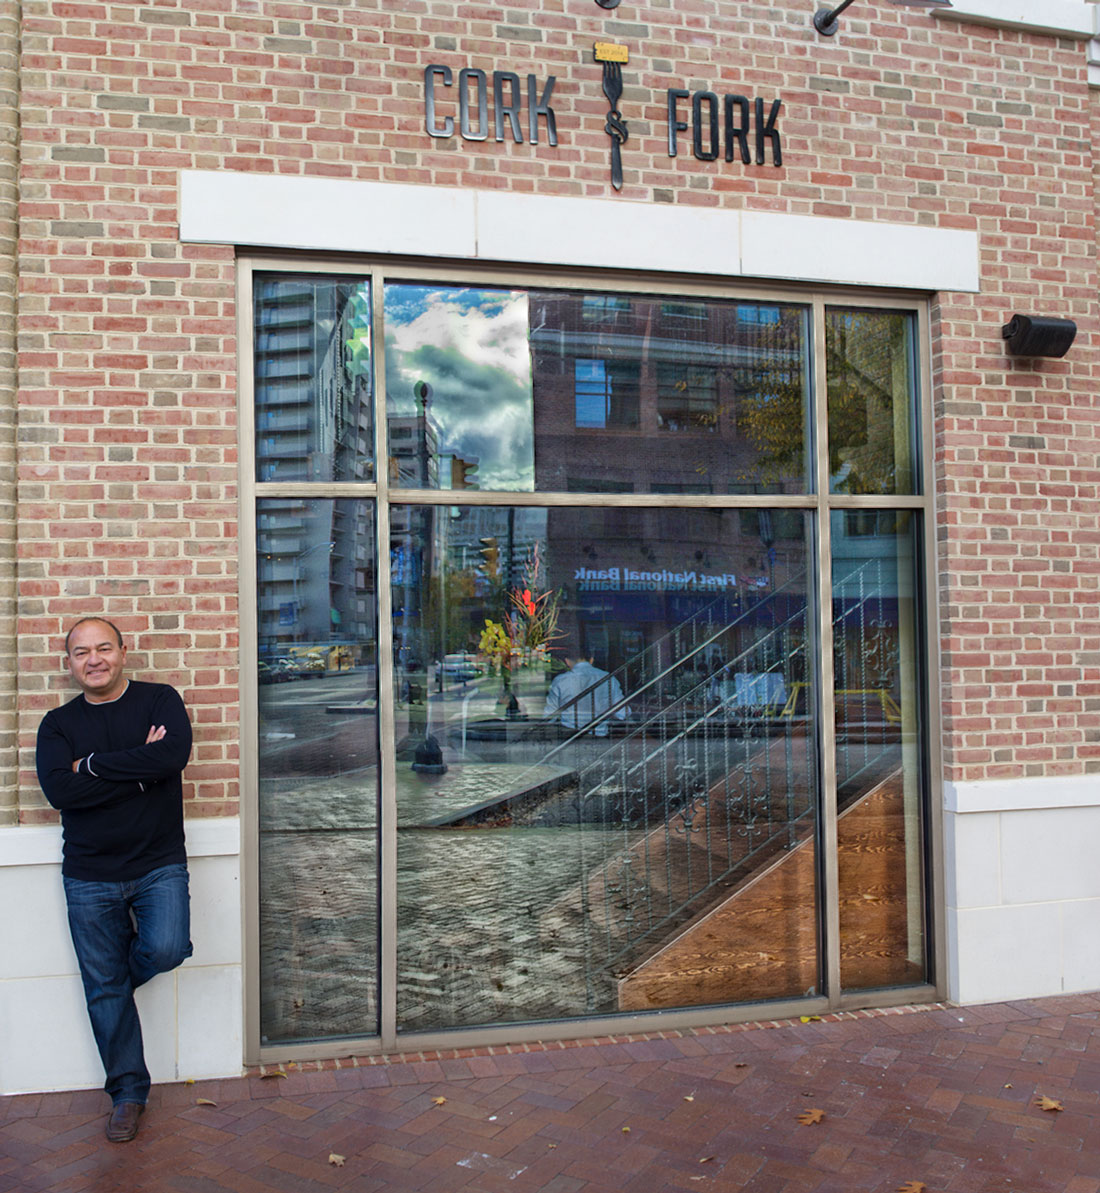 Nick Laus, Owner of the Cork and Fork Restaurant